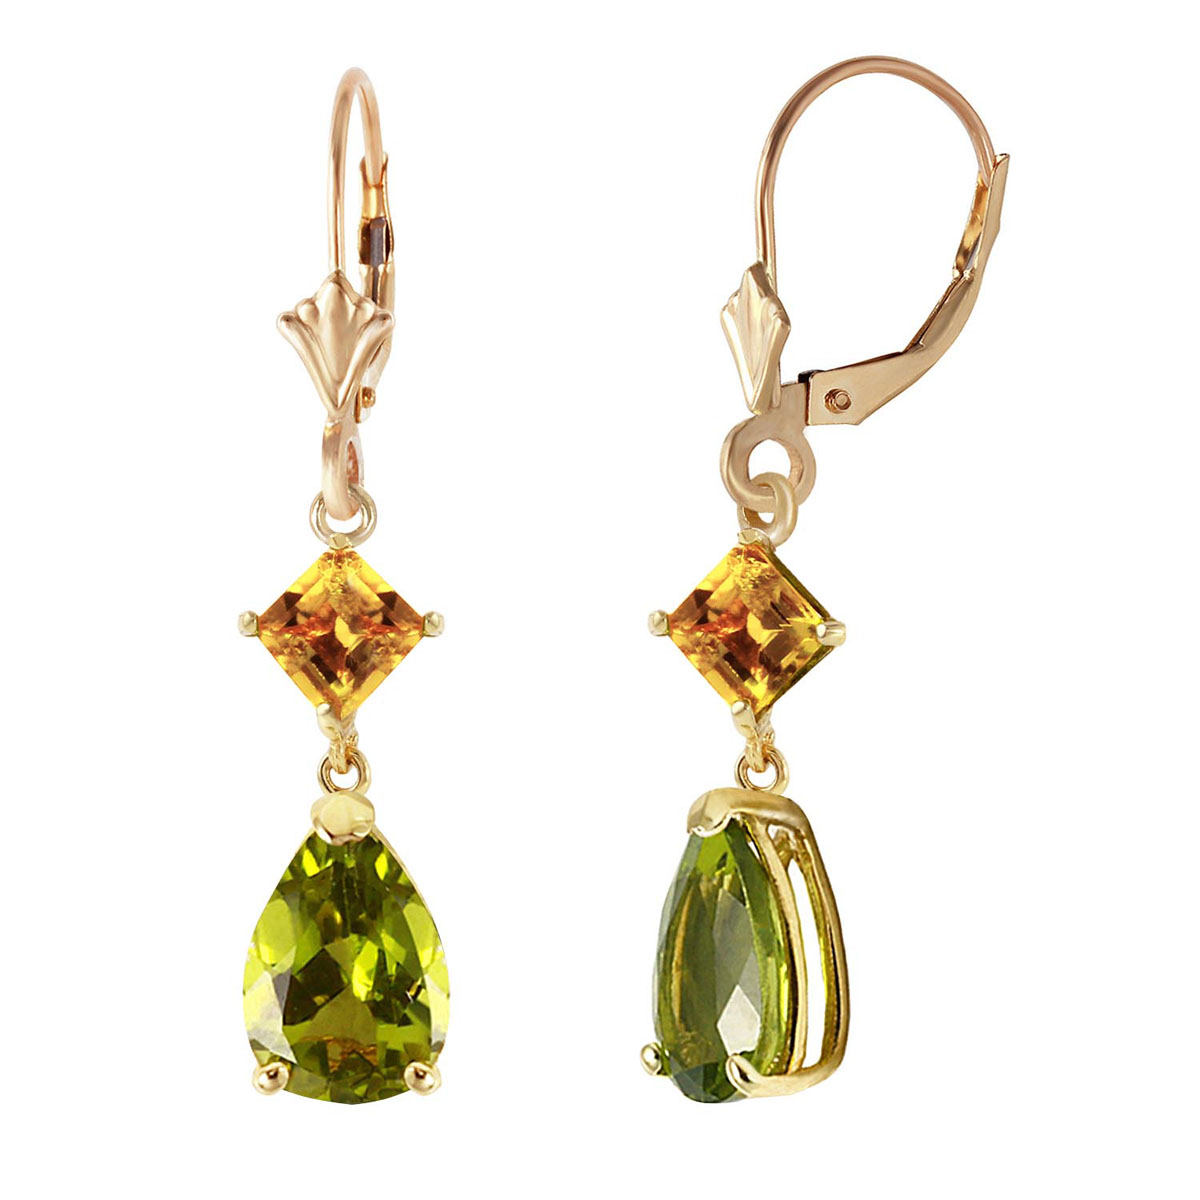 Peridot & Citrine Droplet Earrings in 9ct Gold